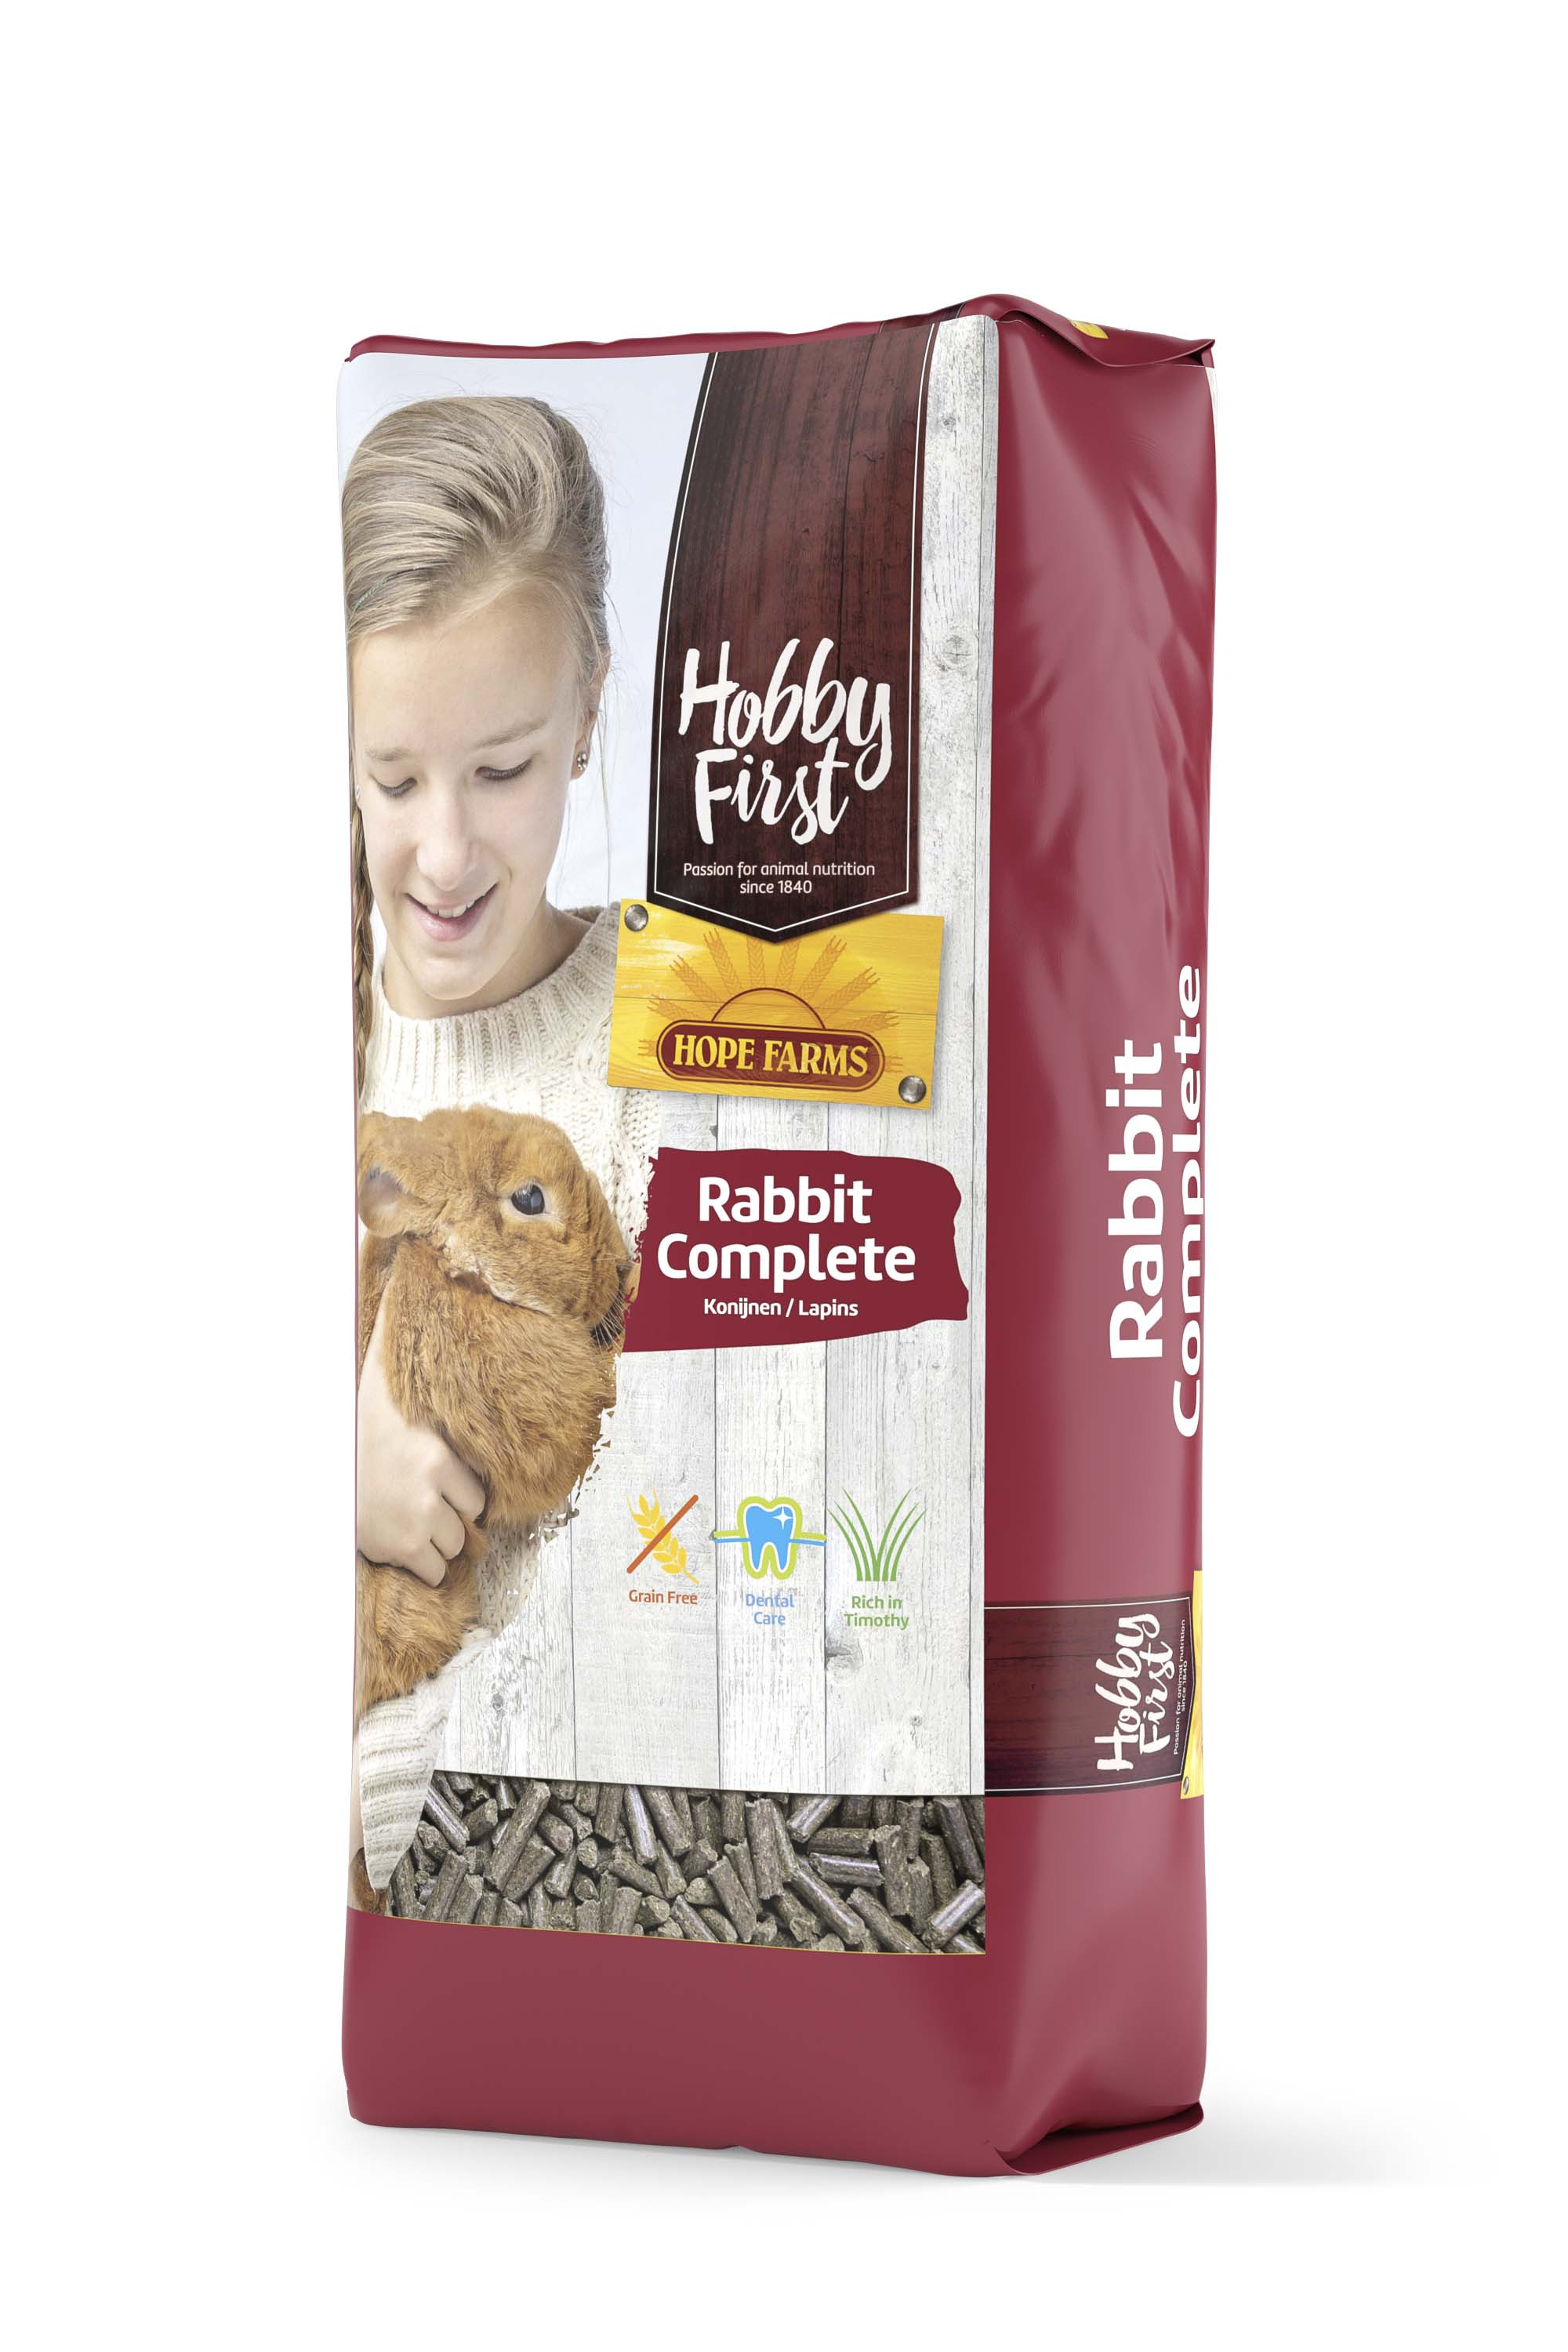 Hobby First Hope Farms Rabbit Complete